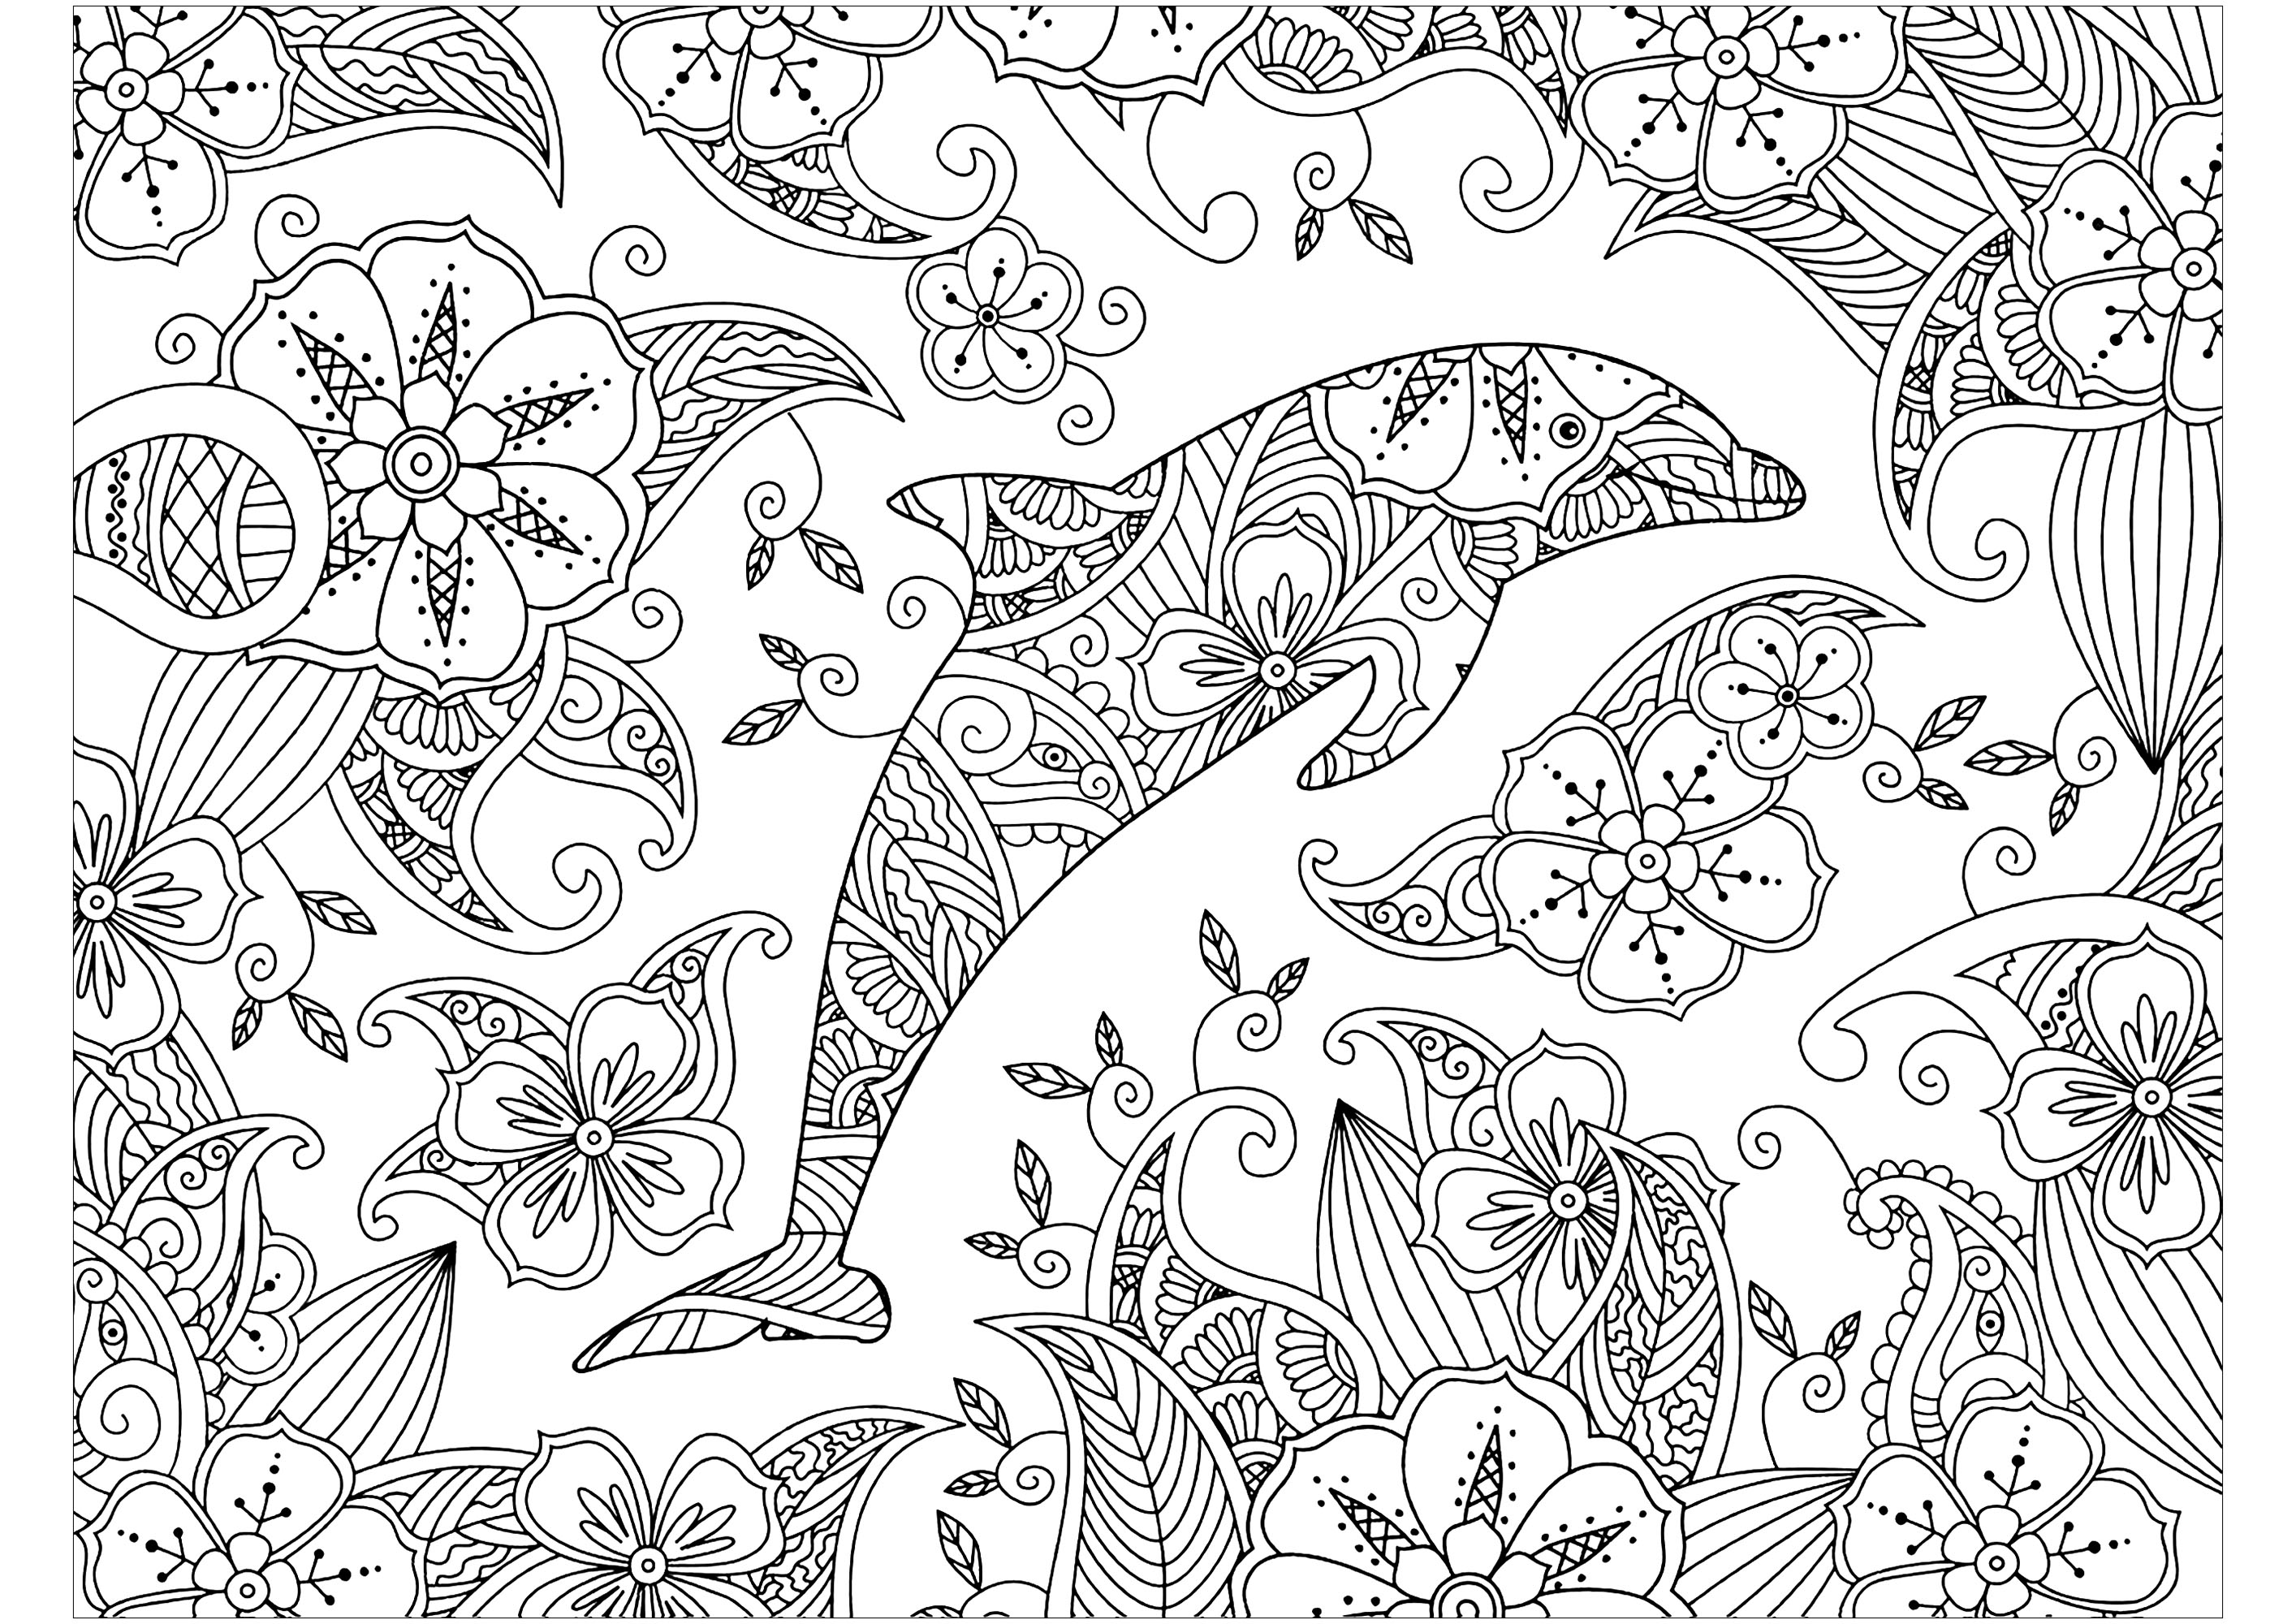 Dolphin surrounded - Dolphins Adult Coloring Pages